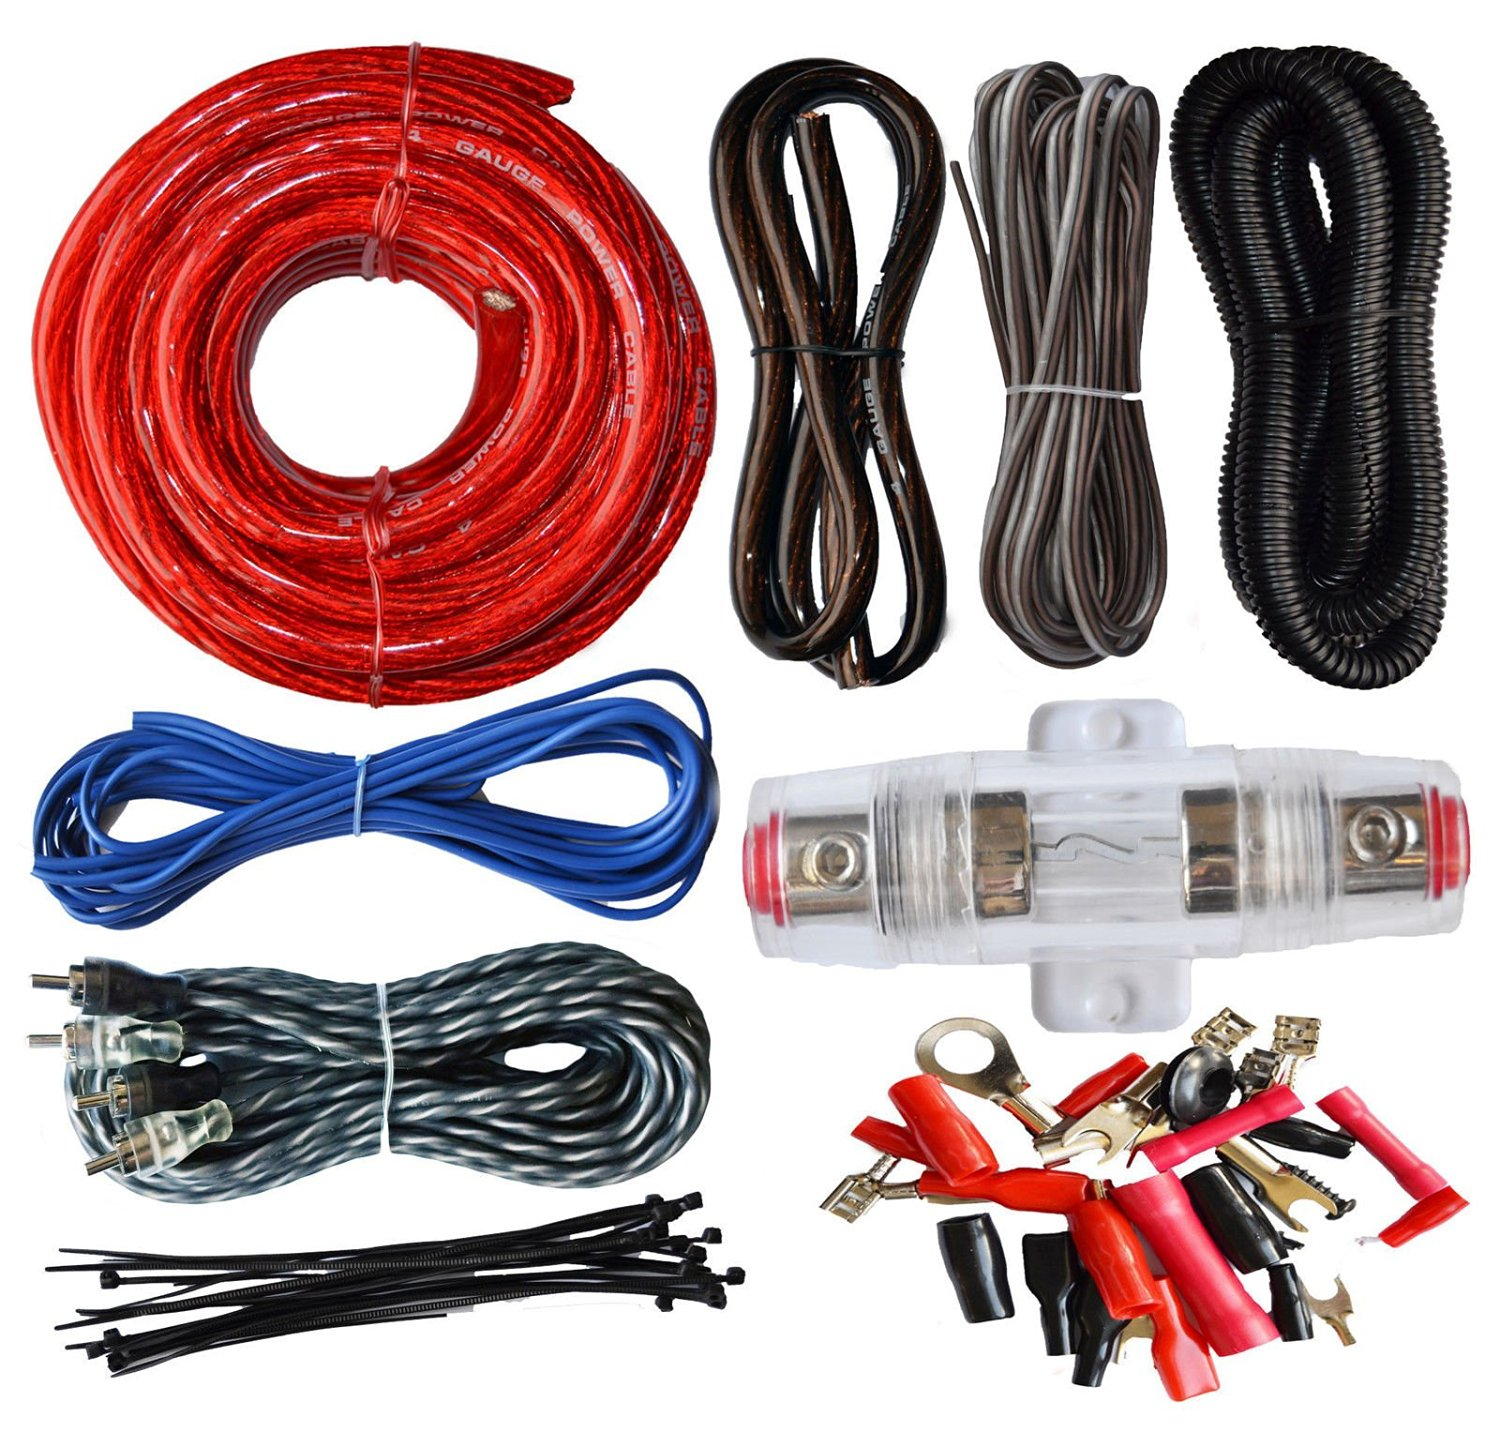 Buy 10 Gauge Awg Wire Amp Kit Car Audio Amplifier Installation Images Of Lifier On Speakers Wiring 4 Power Cable 16ft Ground